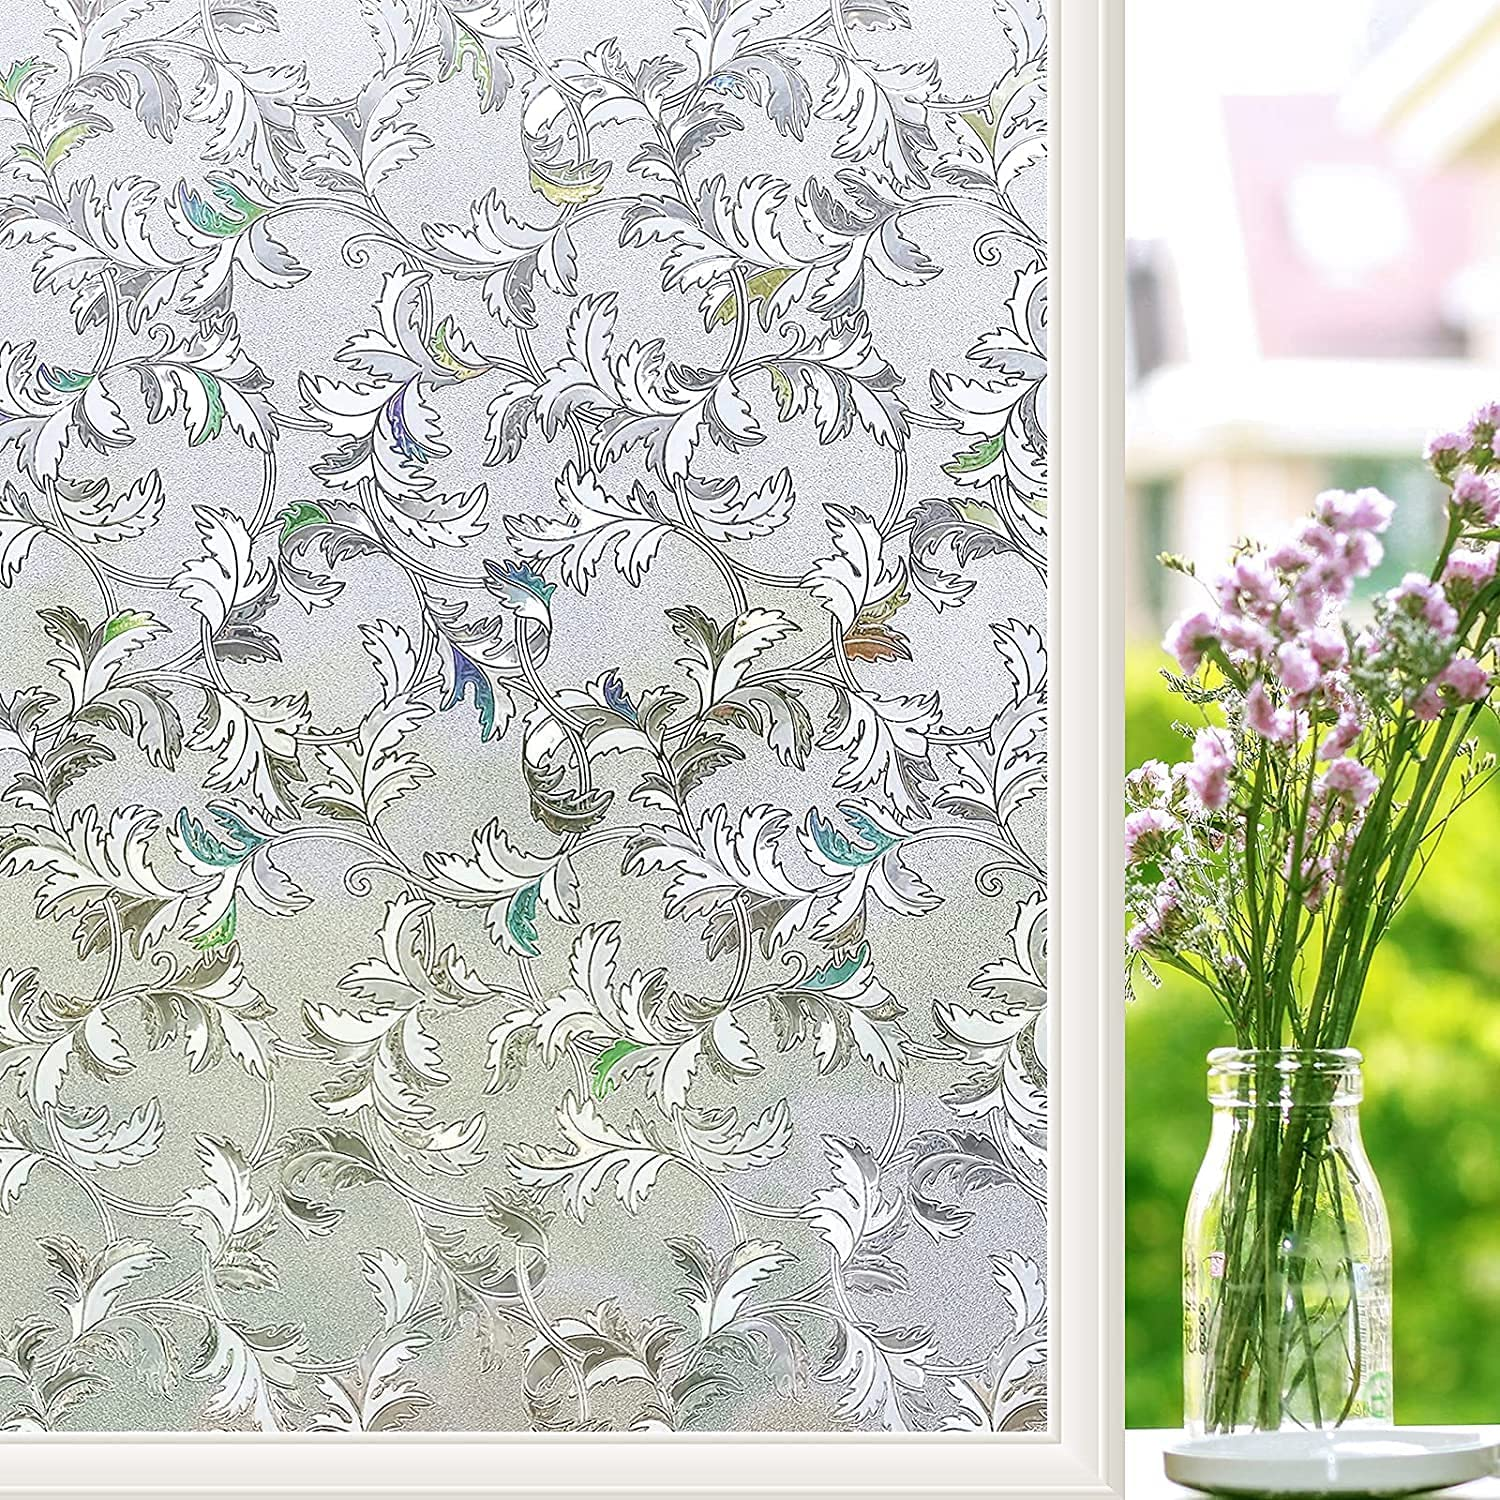 QZSW 3D Non-Adhesive Window Film Gla Our shop OFFers NEW the best service Privacy self-Adhesive Vine